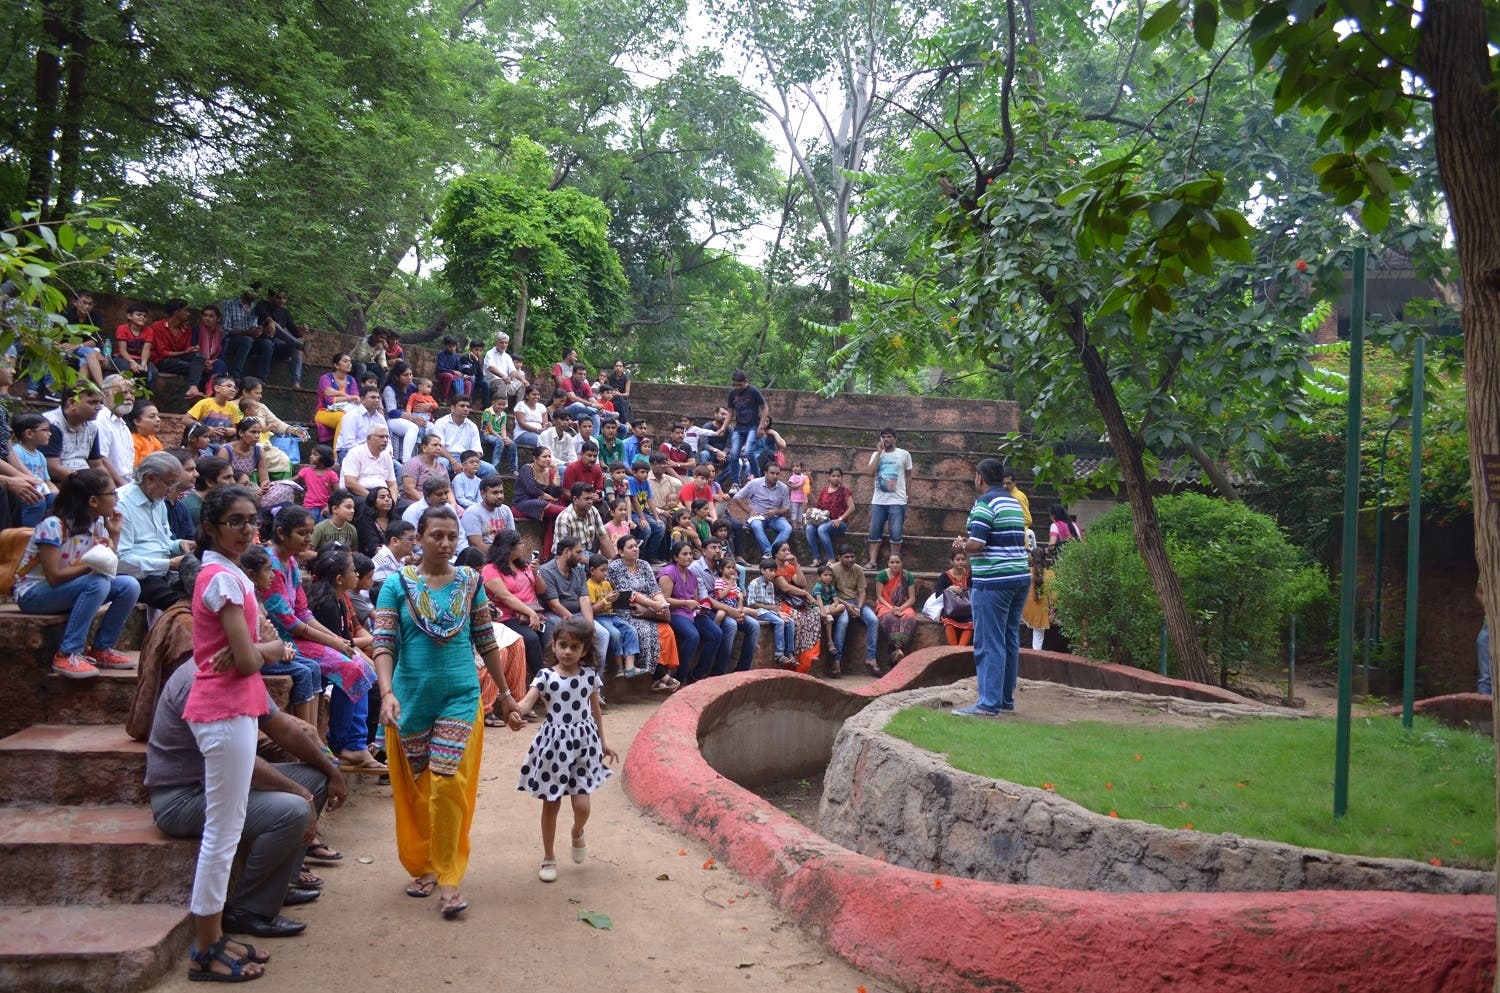 Snake awareness programs at Sundarvan in Ahmedabad attract many nature lovers on Sundays. (Supplied)